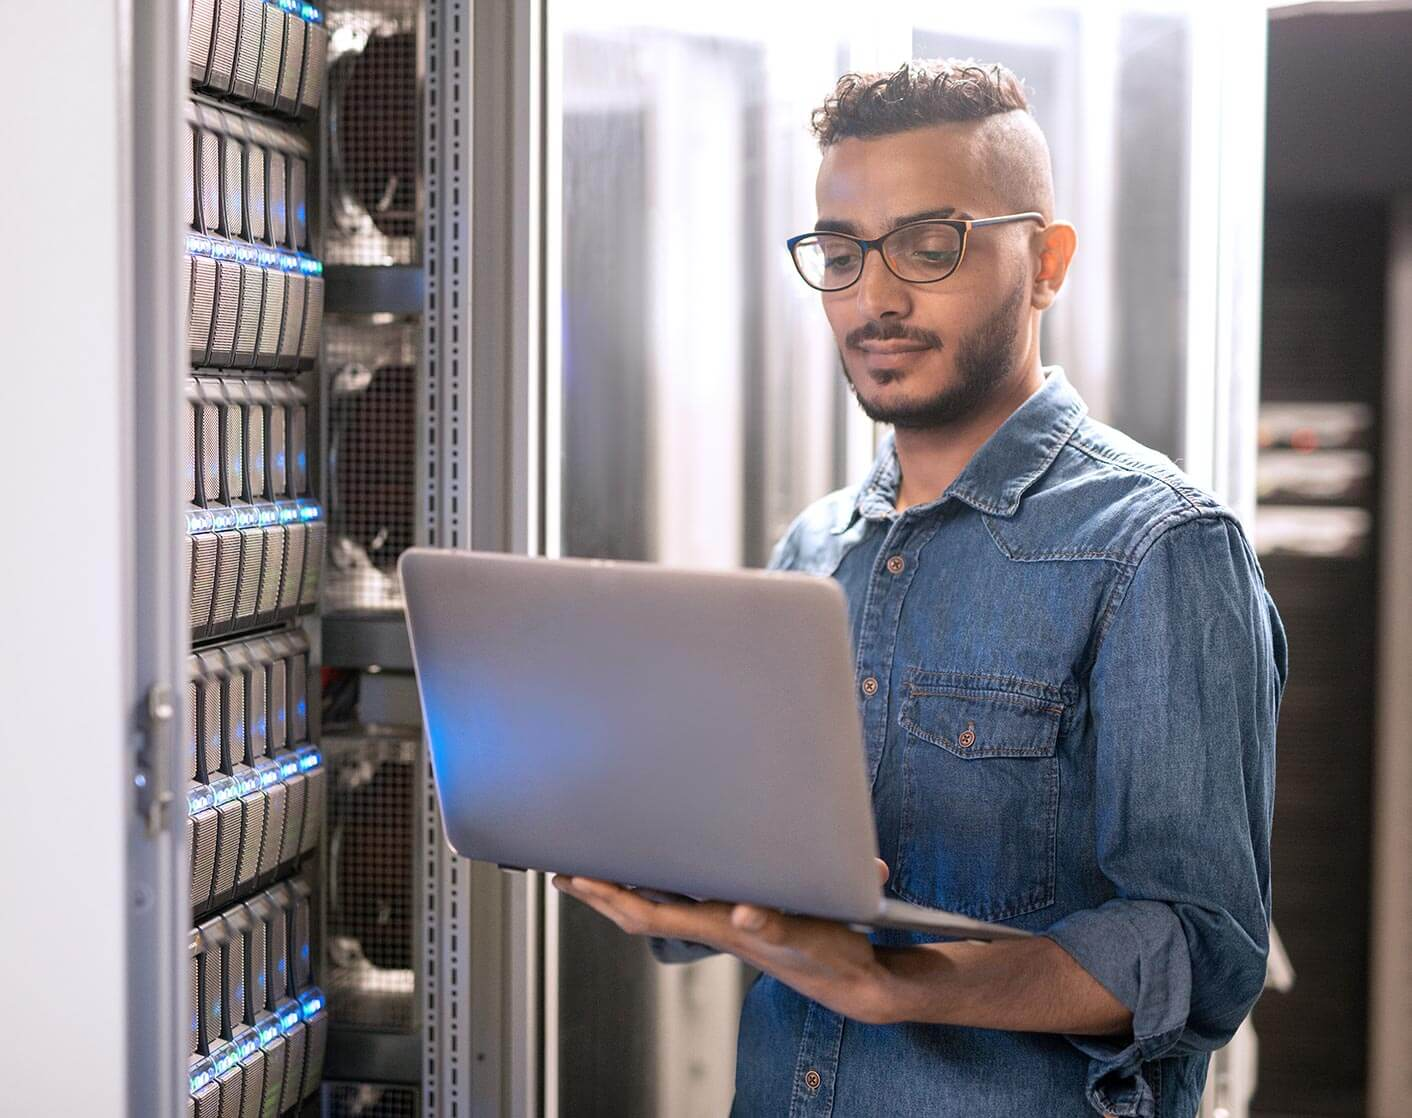 Asian man holding laptop in front of bank of computer servers